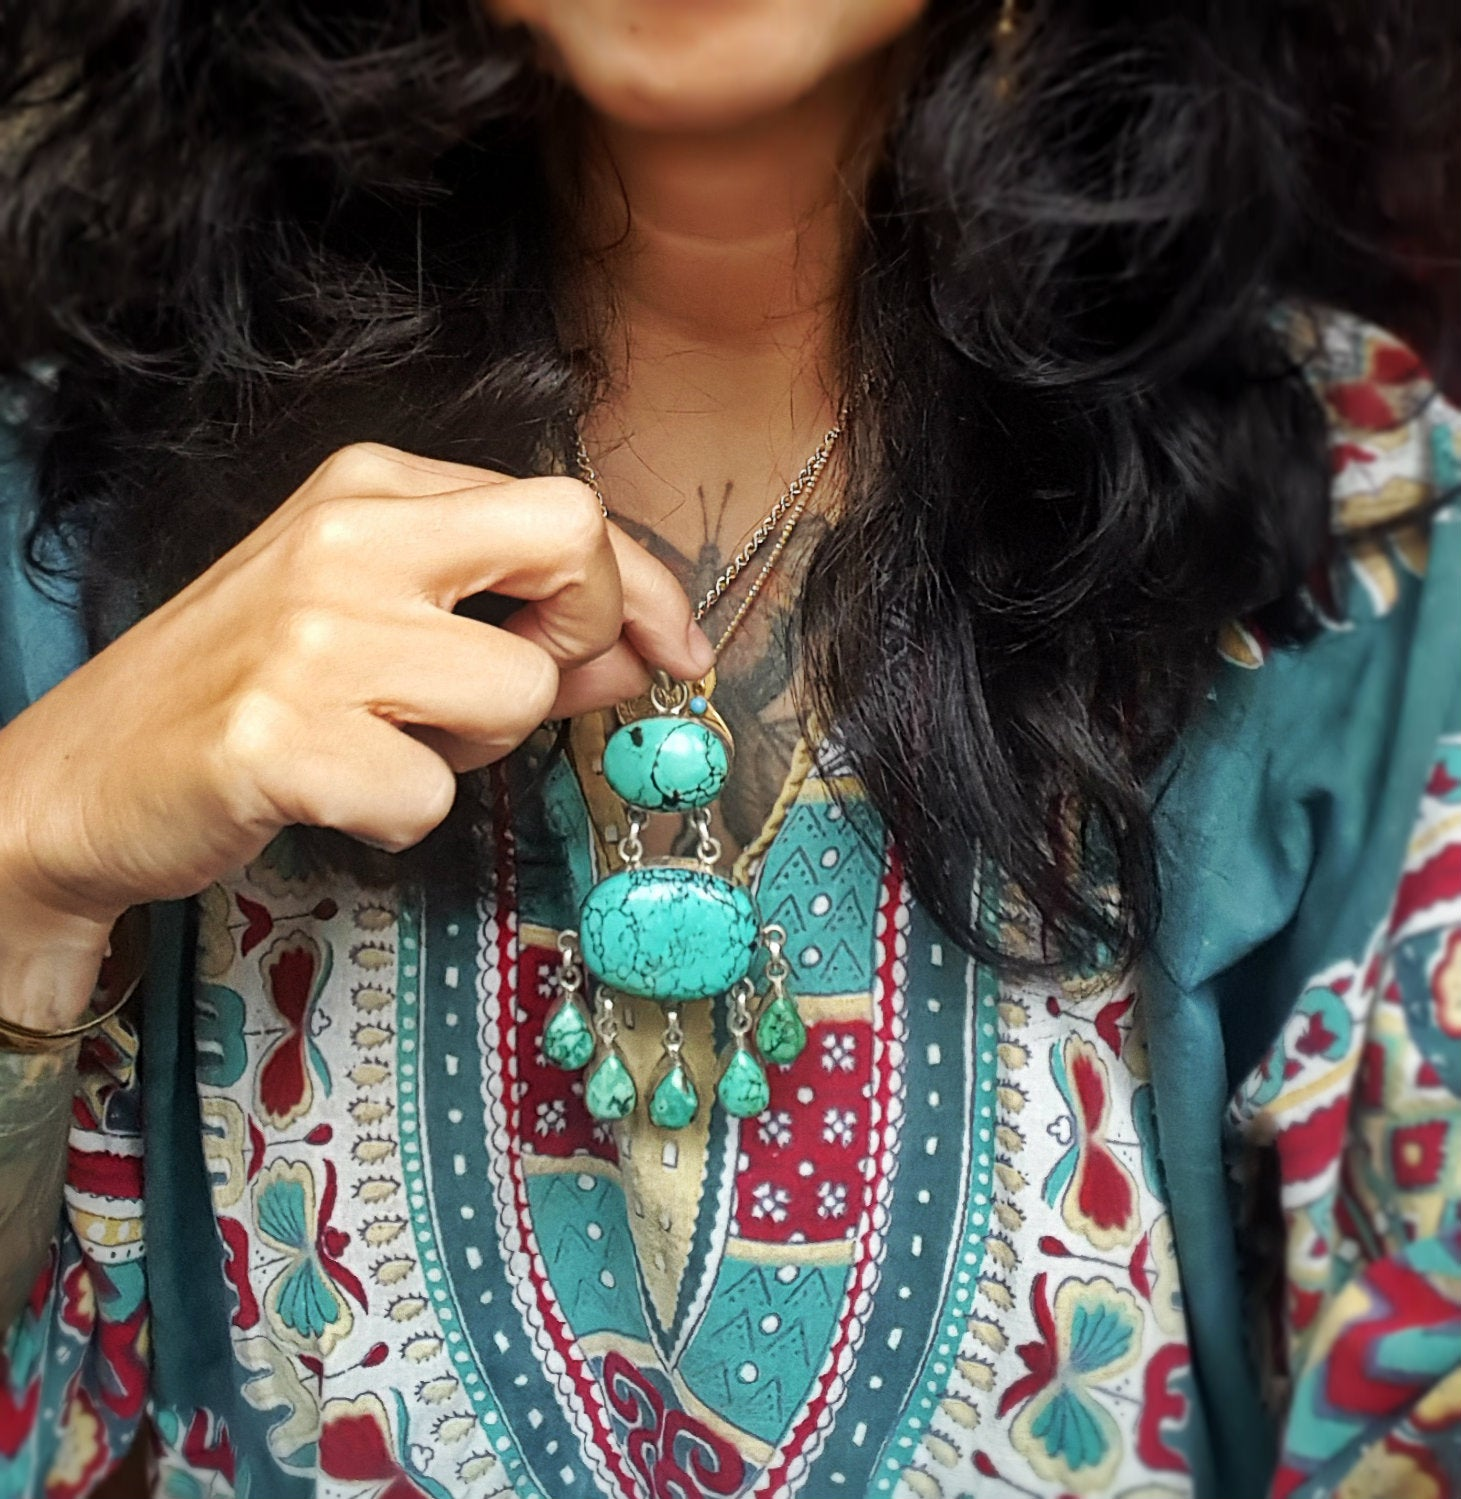 Huge Turquoise Pendant from India